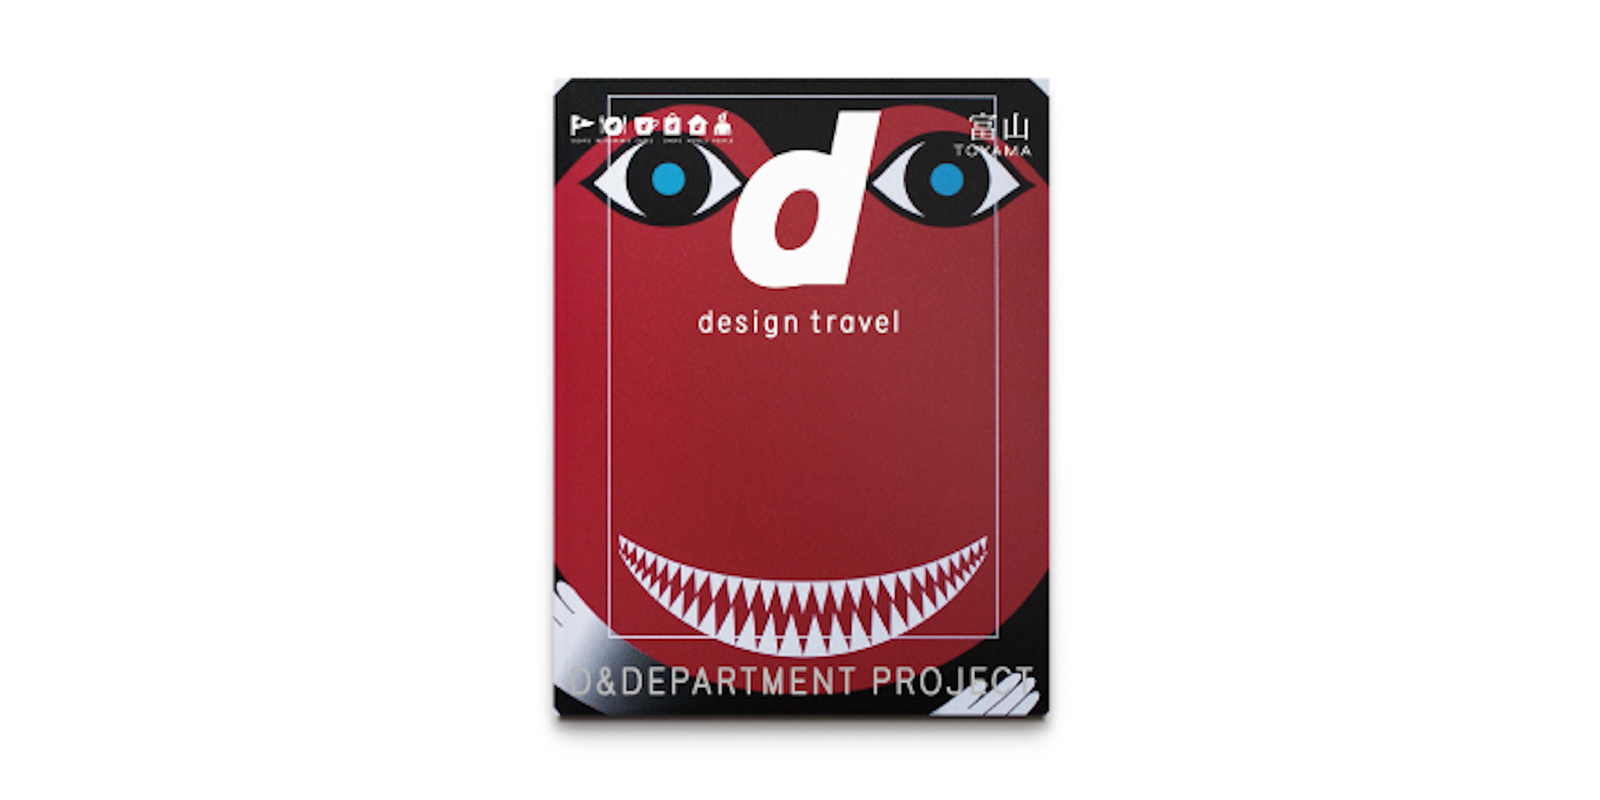 d design travel 富山